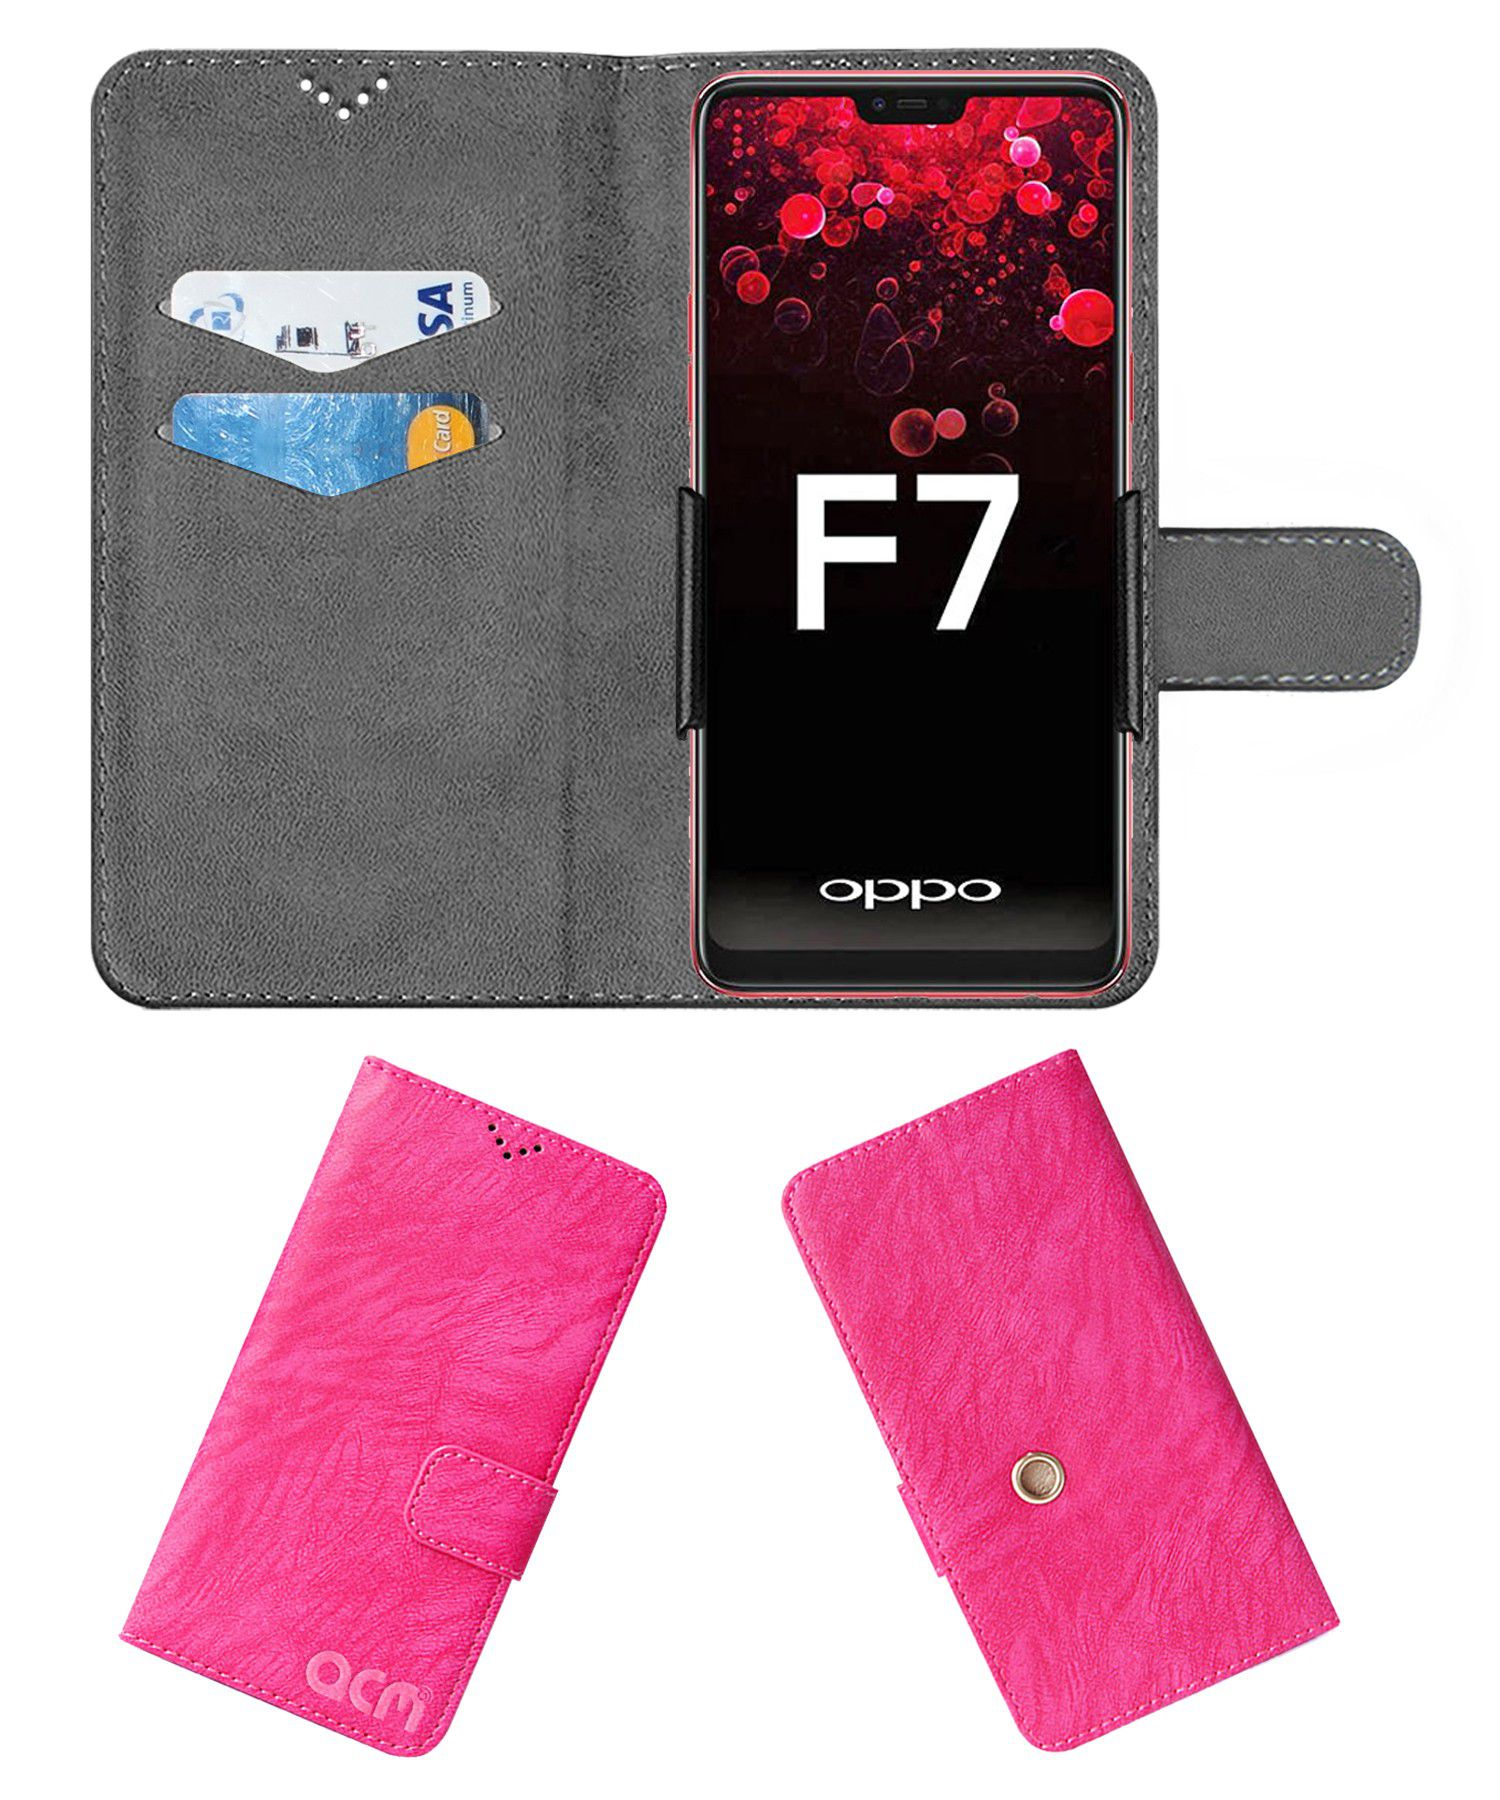 Oppo F7 Cricket Limited Edition Flip Cover by ACM - Pink Clip holder to hold your mobile securely